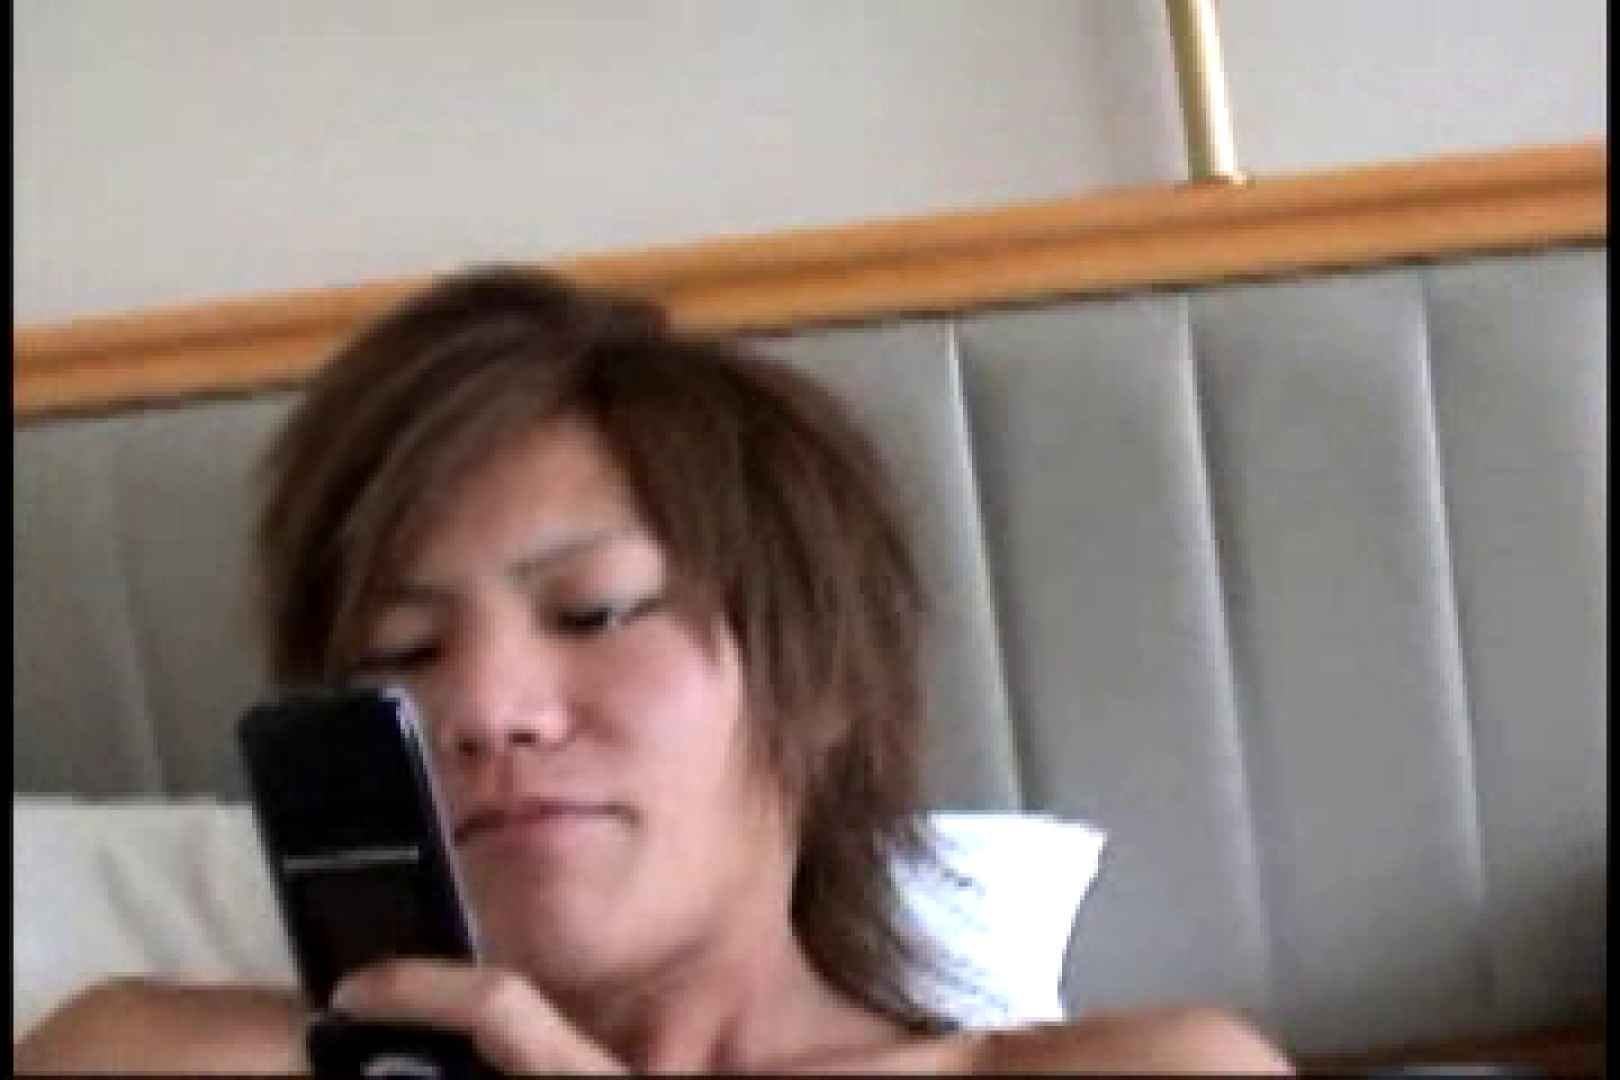 Flow out !!超イケメンtreasuring image!!vol.02 手コキ 男同士動画 97pic 35